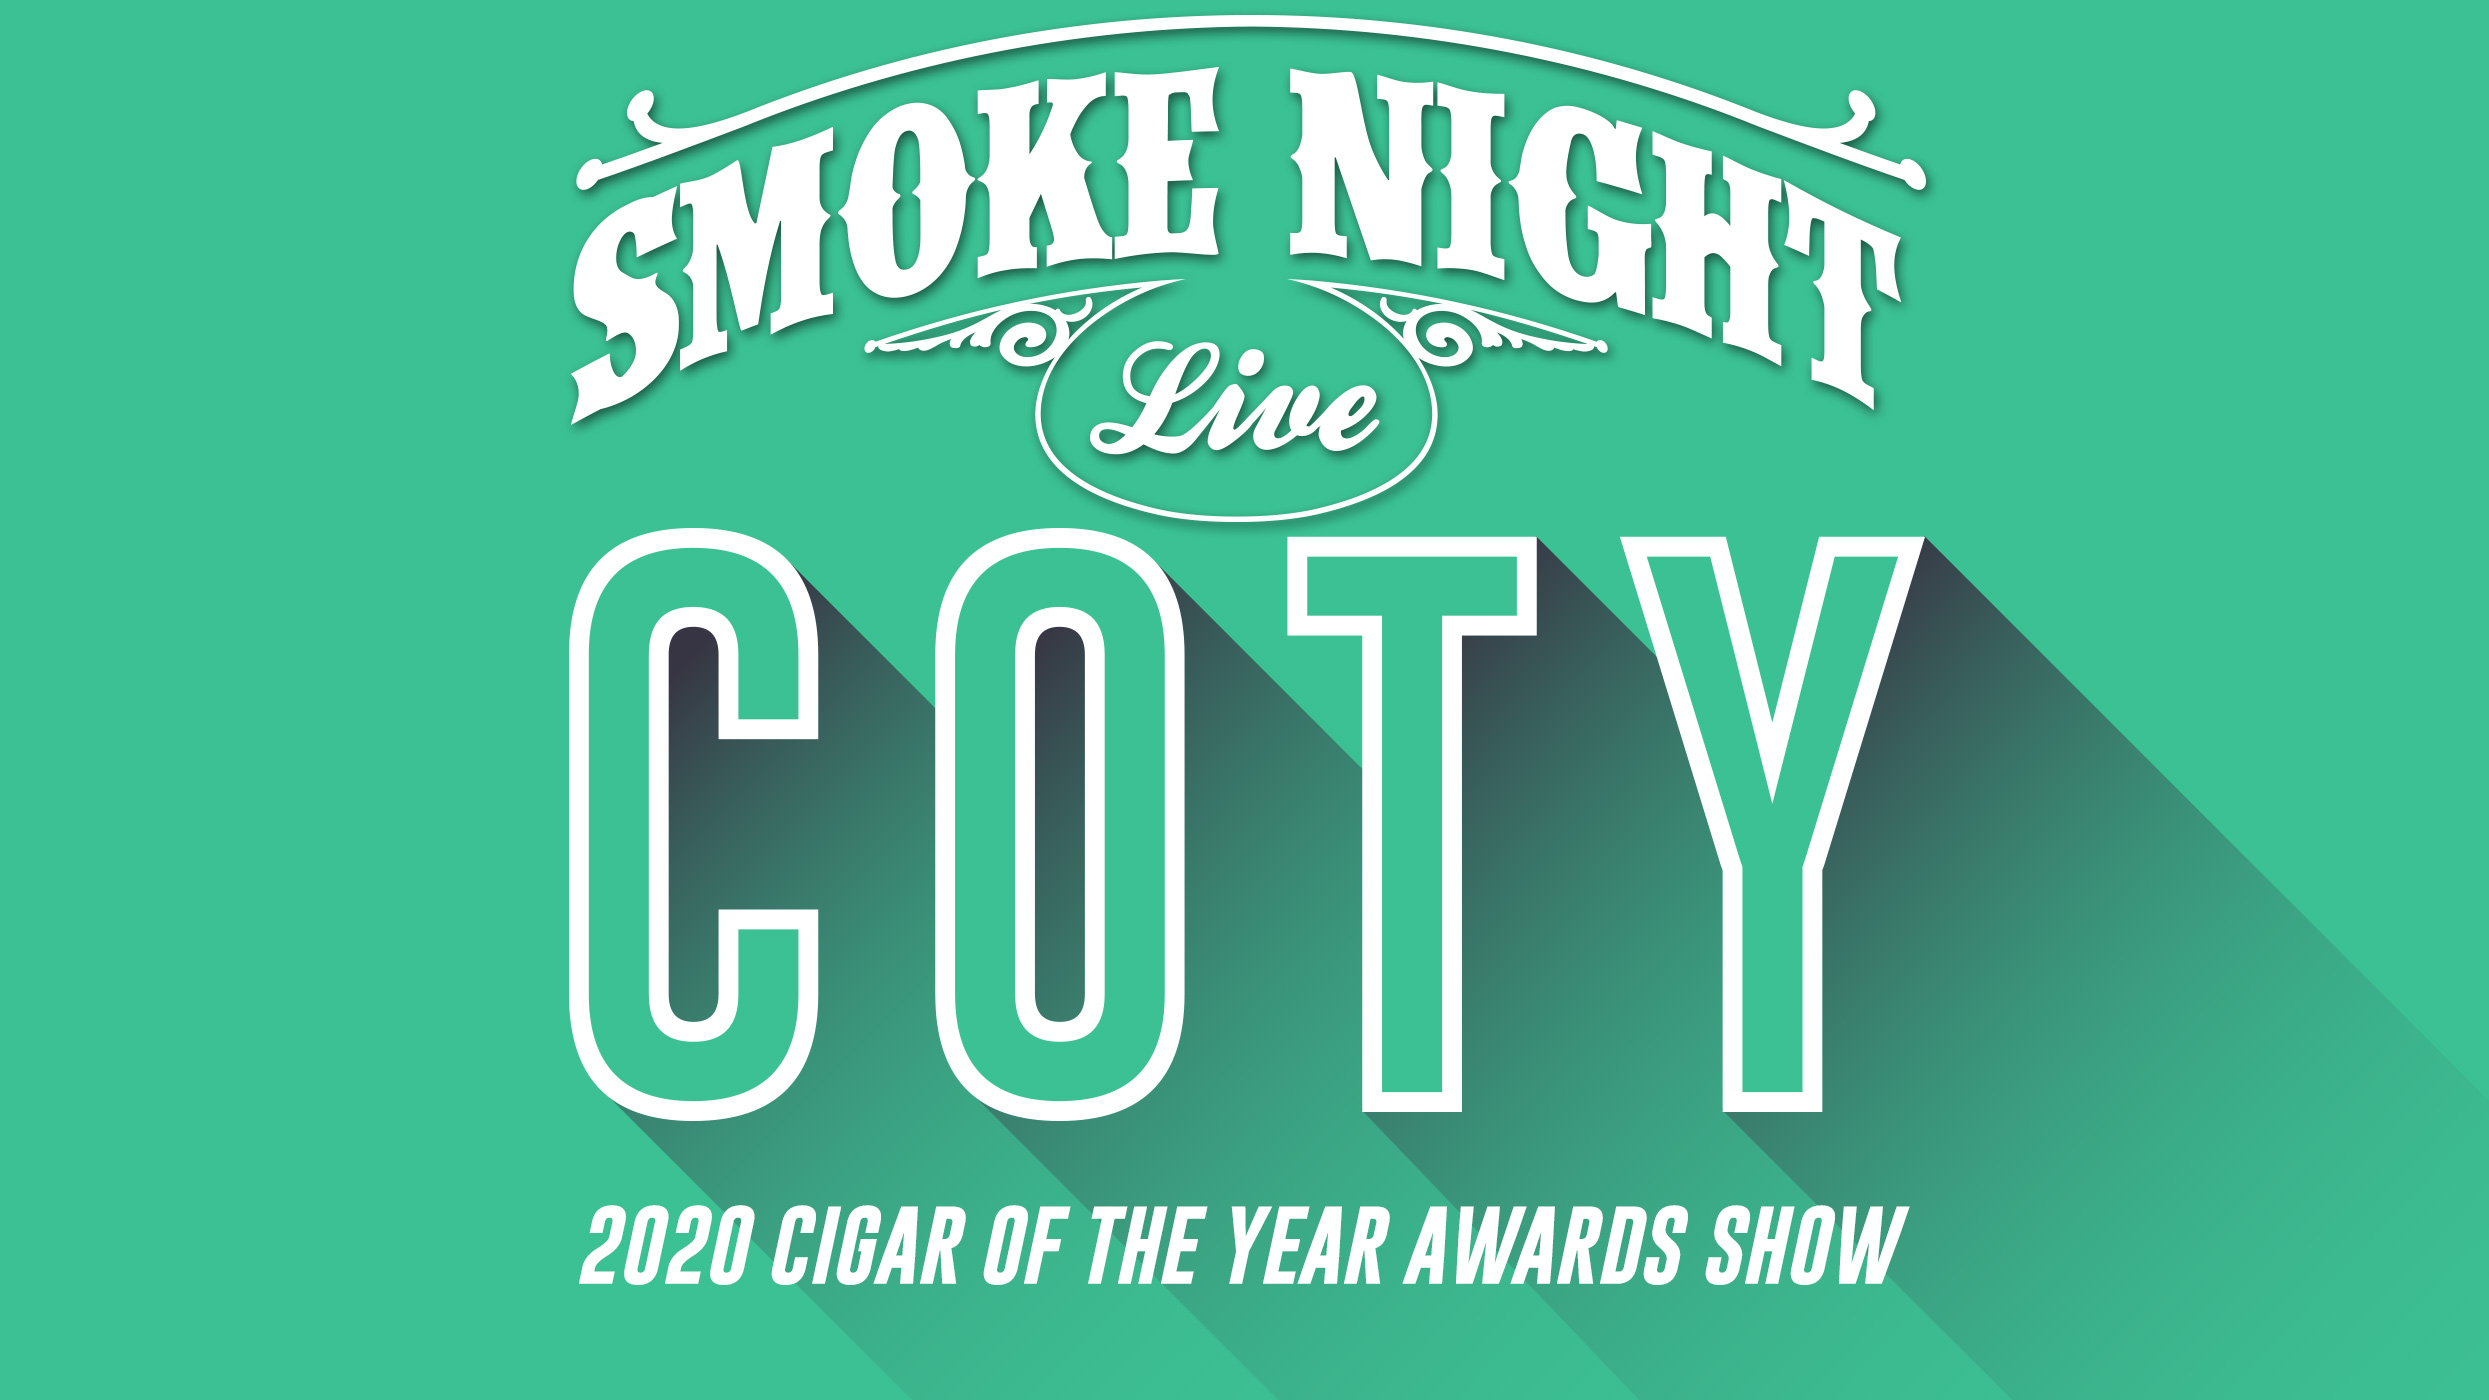 2020 Cigar of the Year Awards show